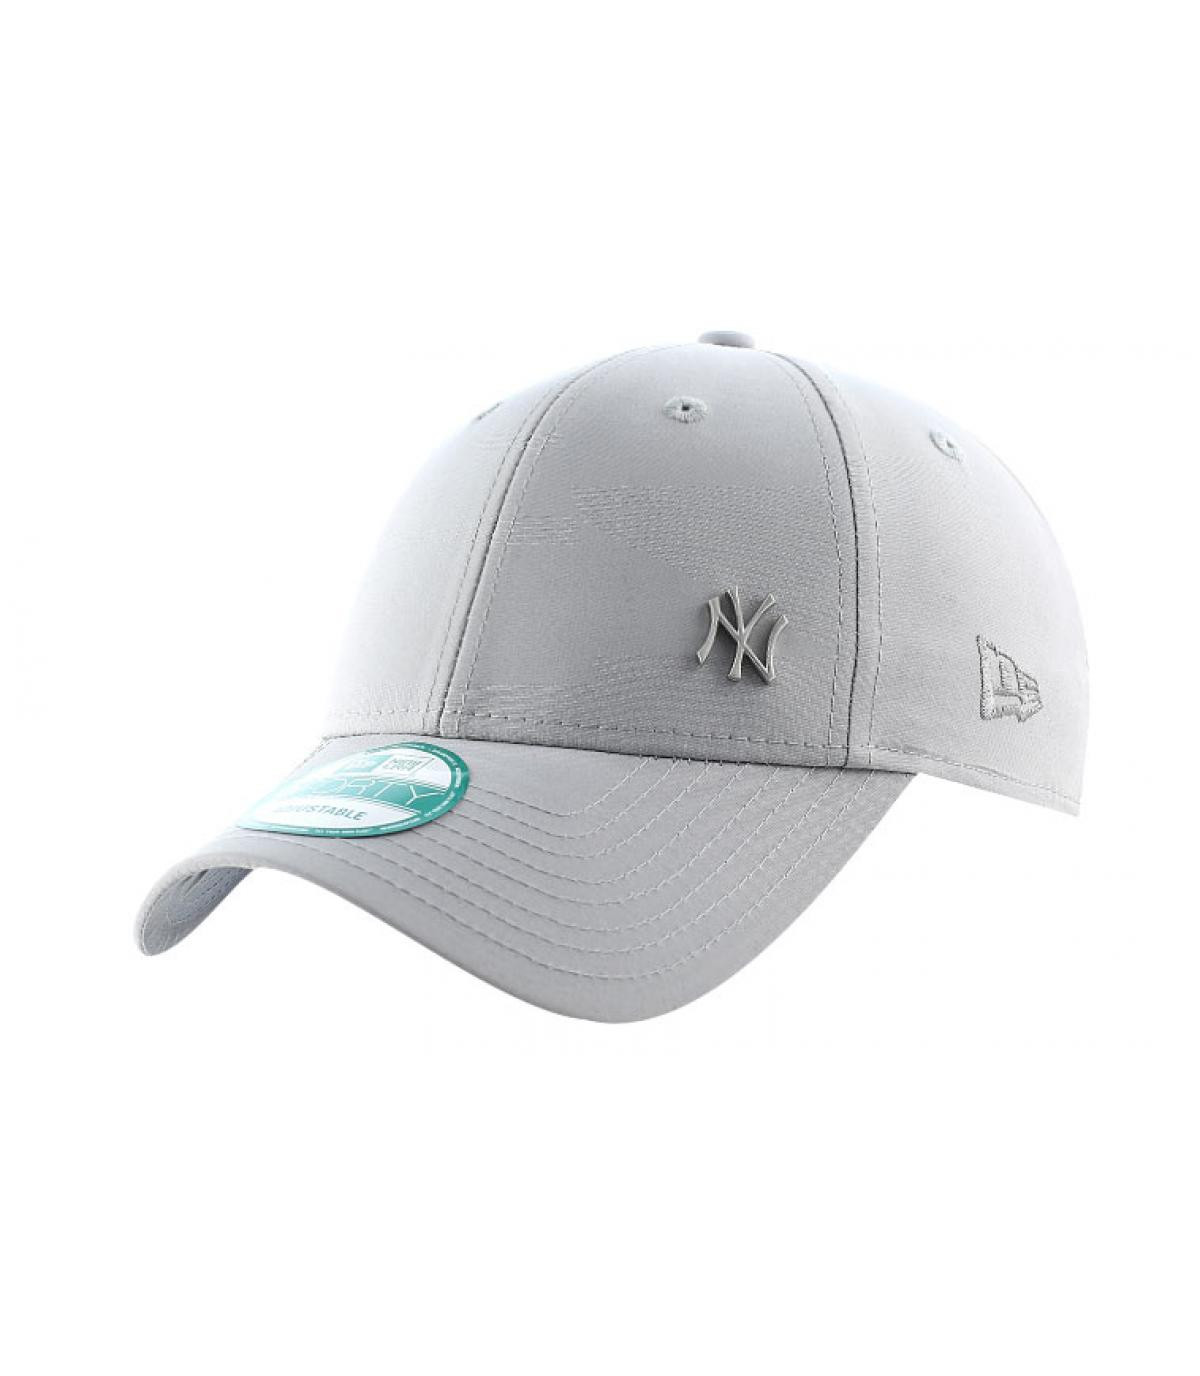 Détails Casquette NY flawless gray - image 2